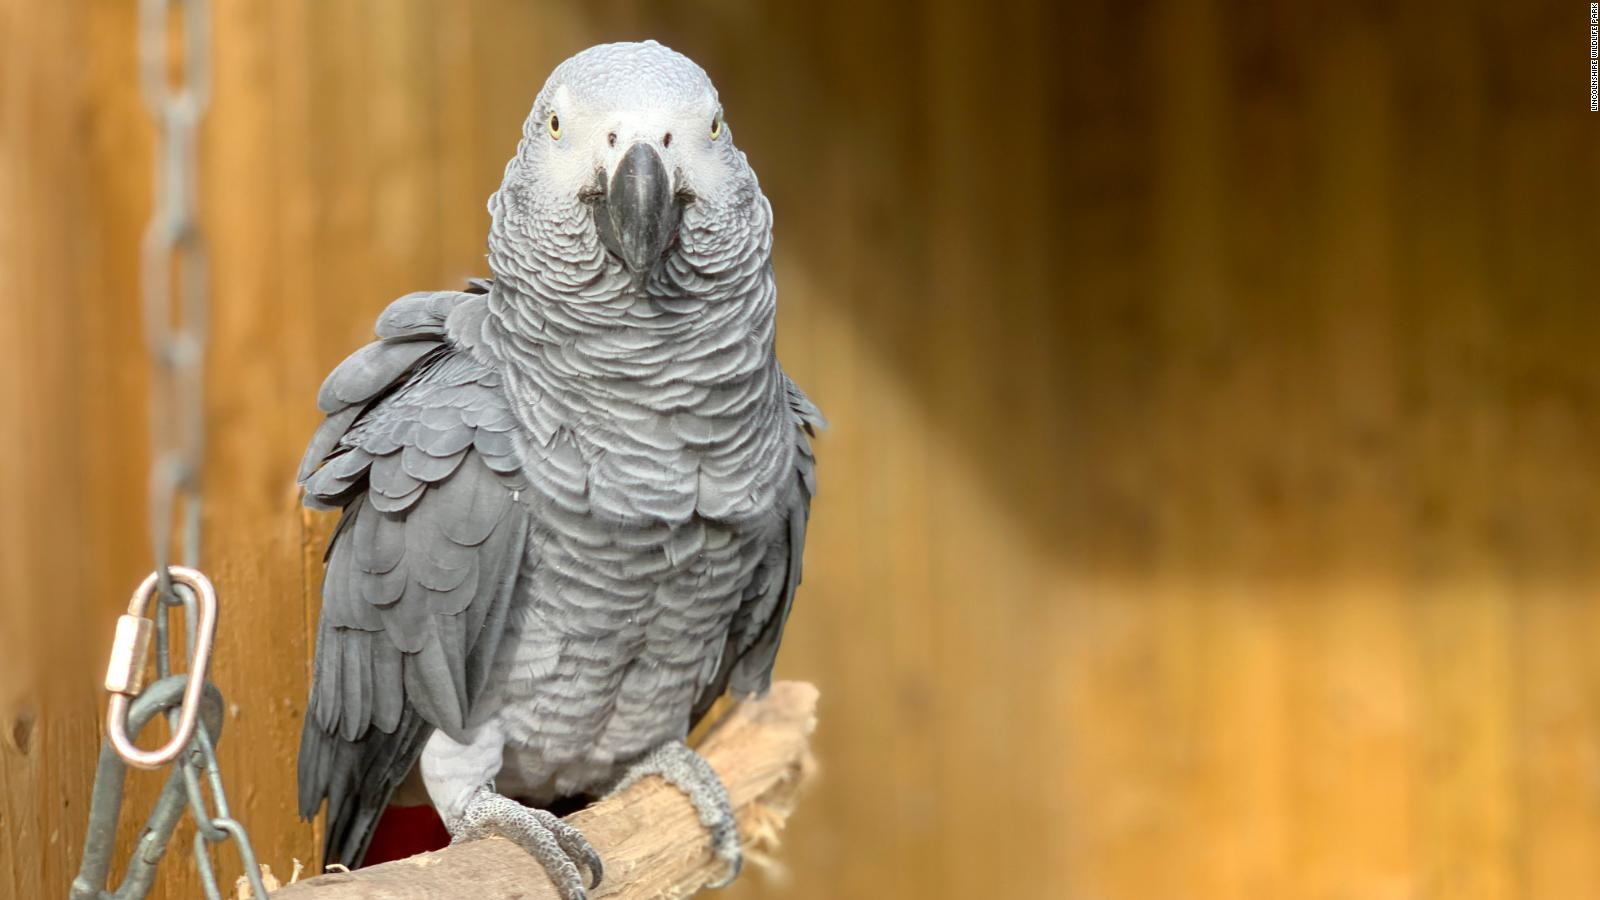 Parrots In British Wildlife Park Moved After Swearing At Visitors Cnn Travel